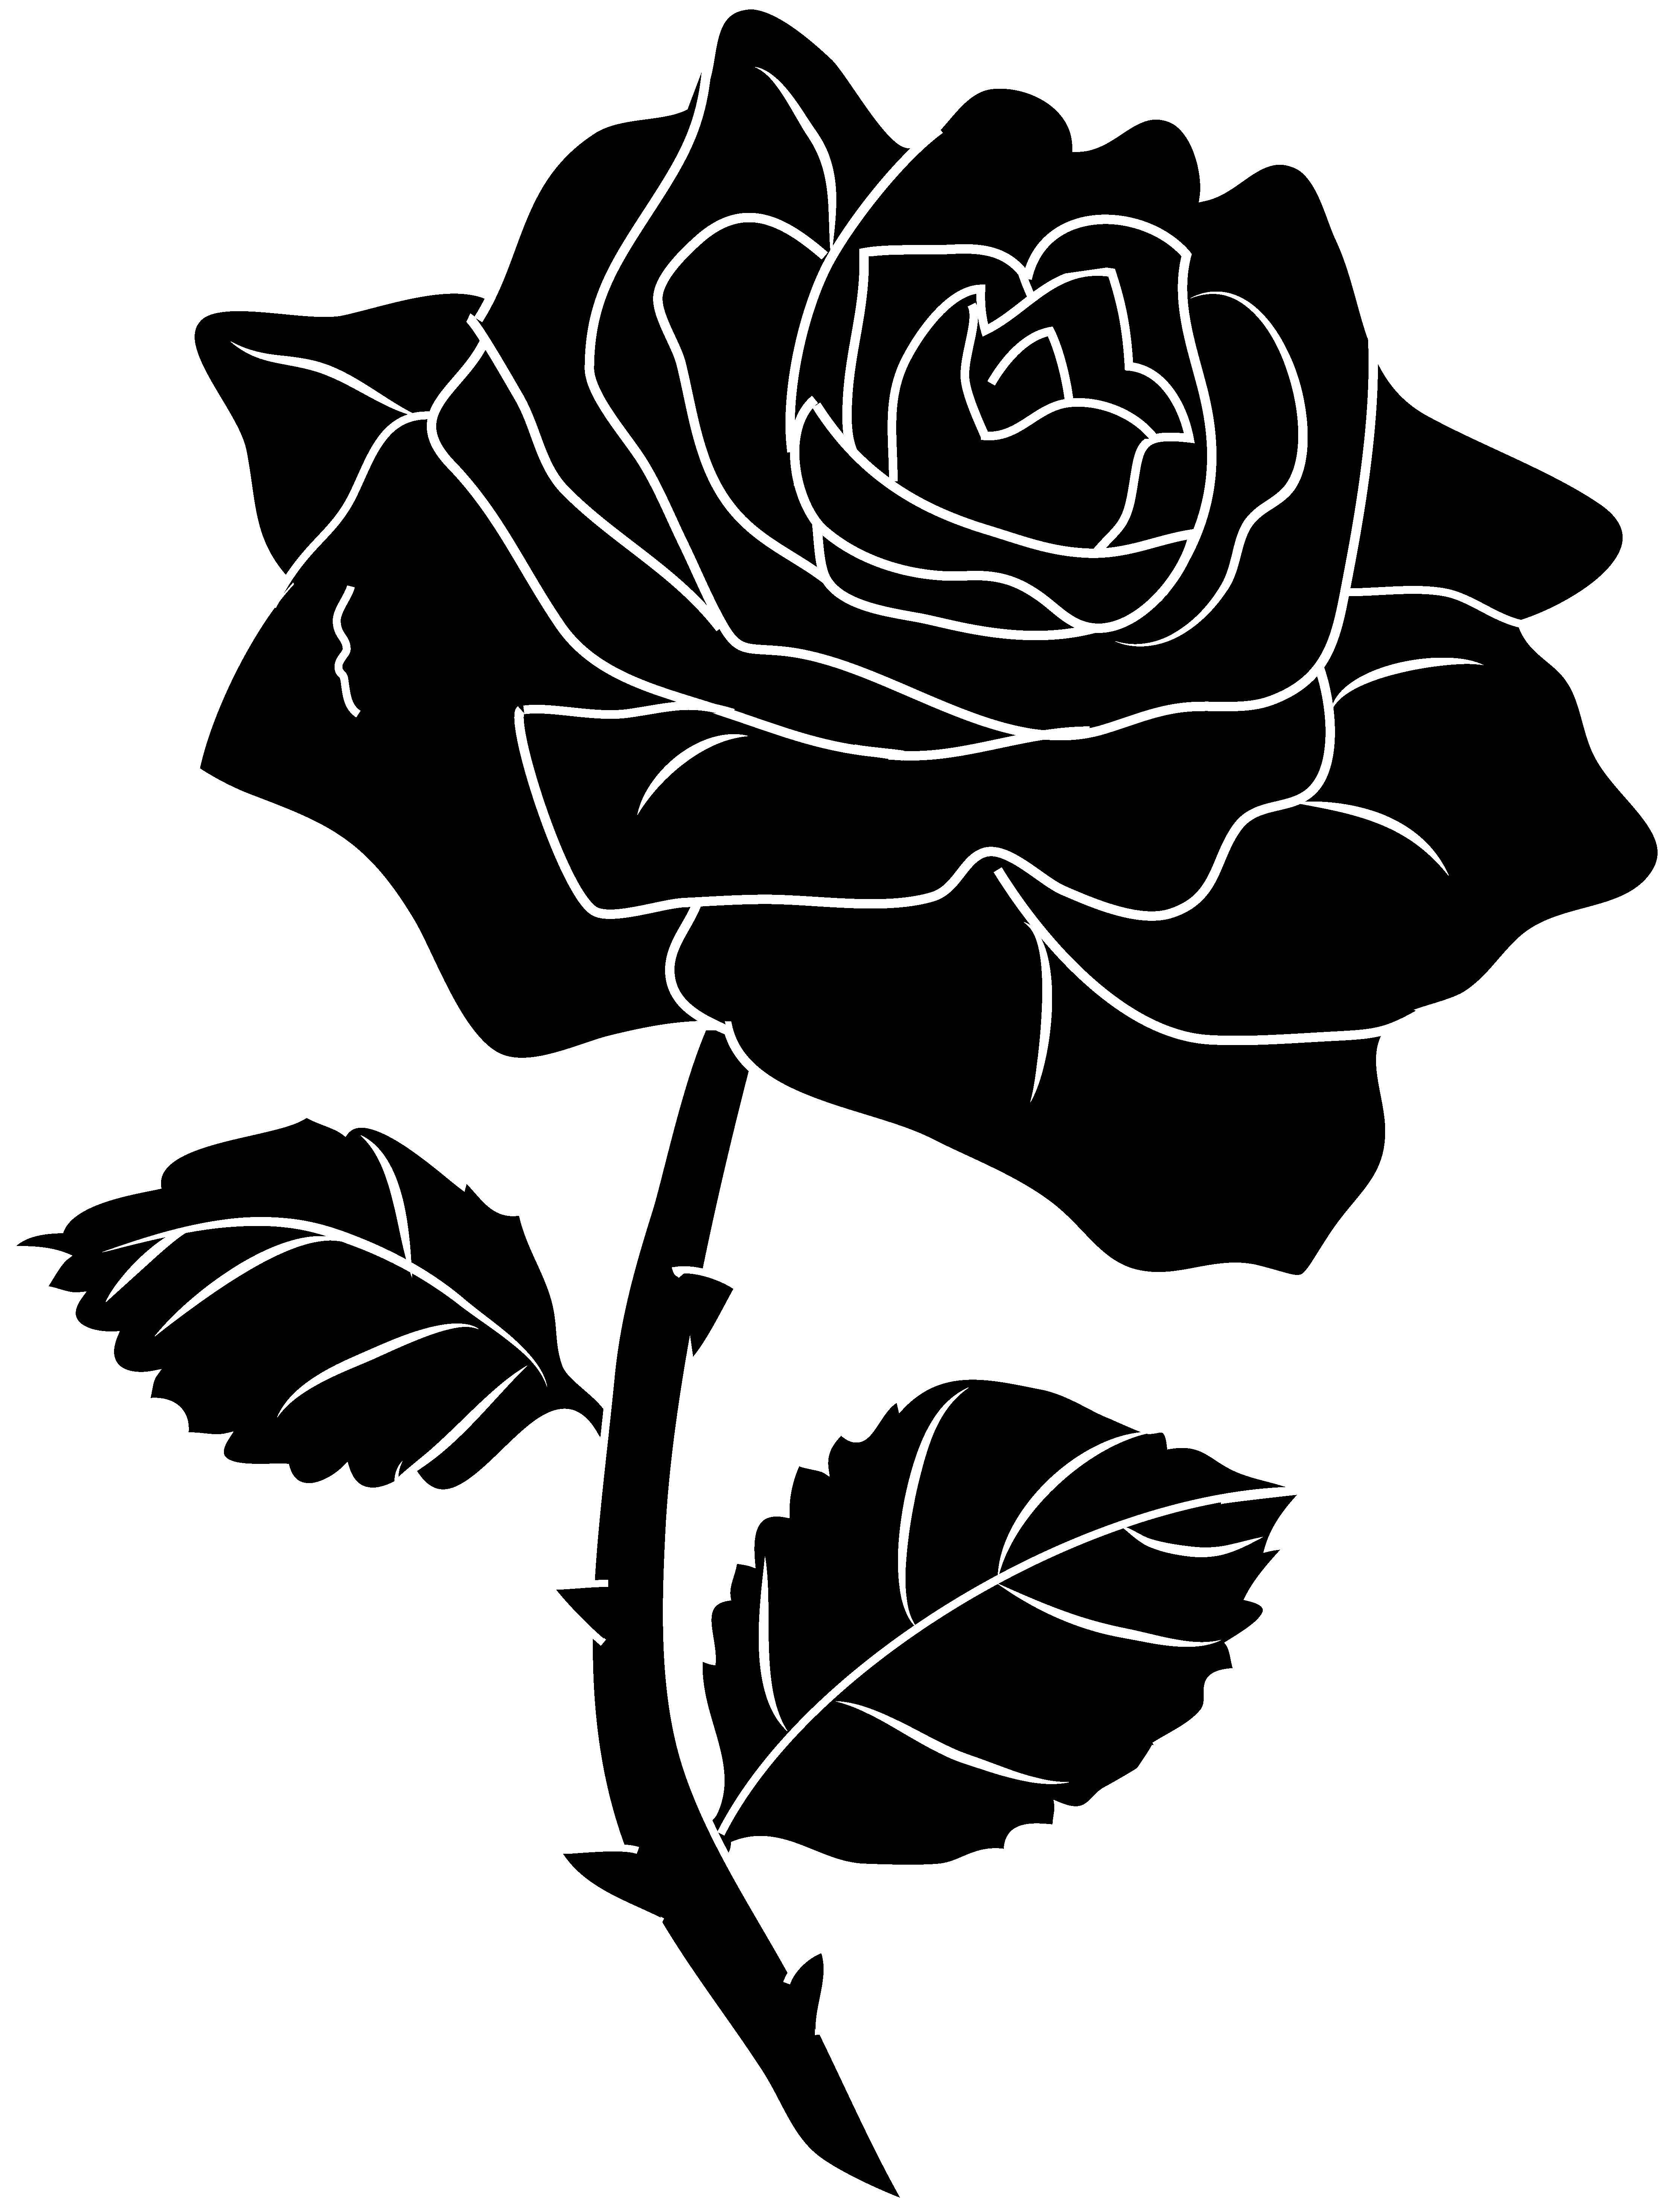 Rose black and white. Poinsettias clipart outline